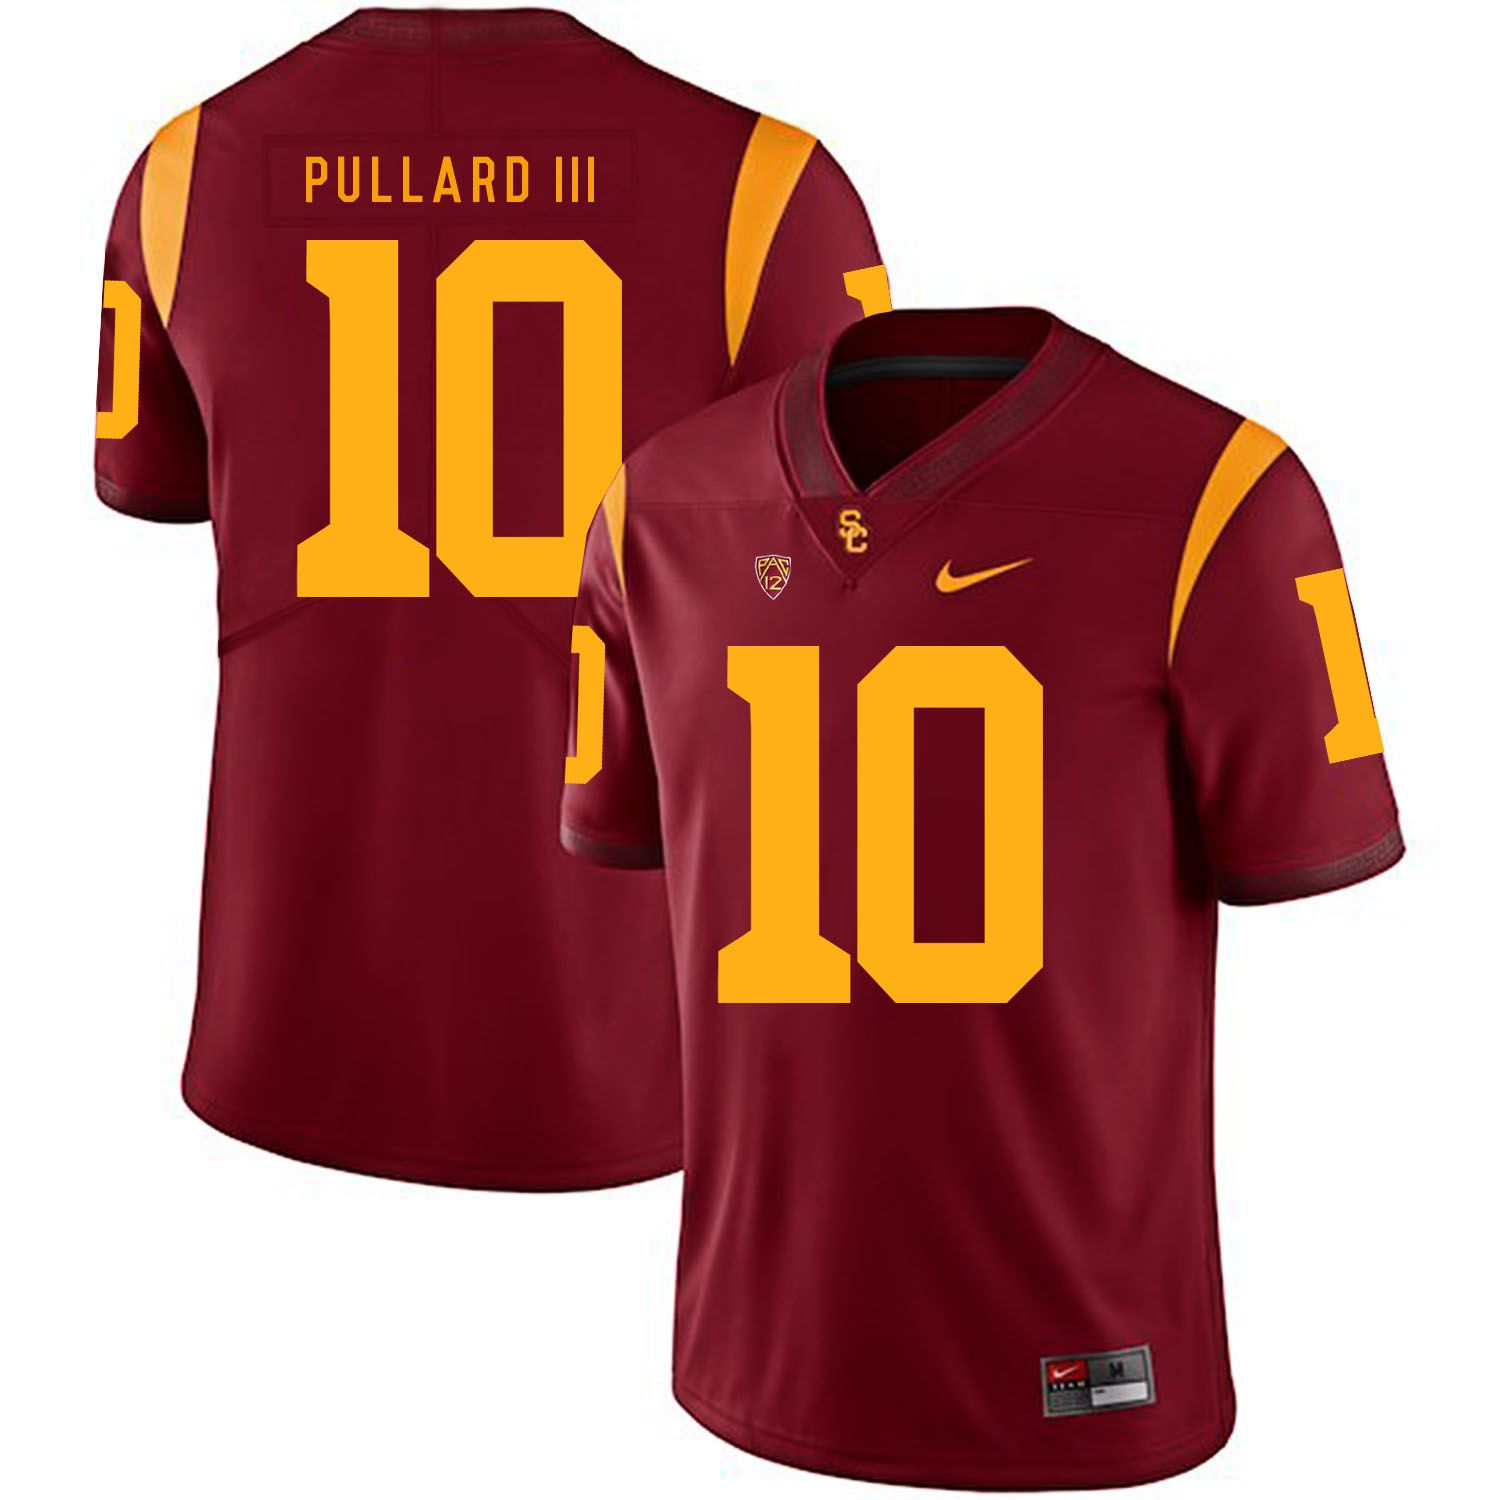 Men USC Trojans 10 Pullard iii Red Customized NCAA Jerseys